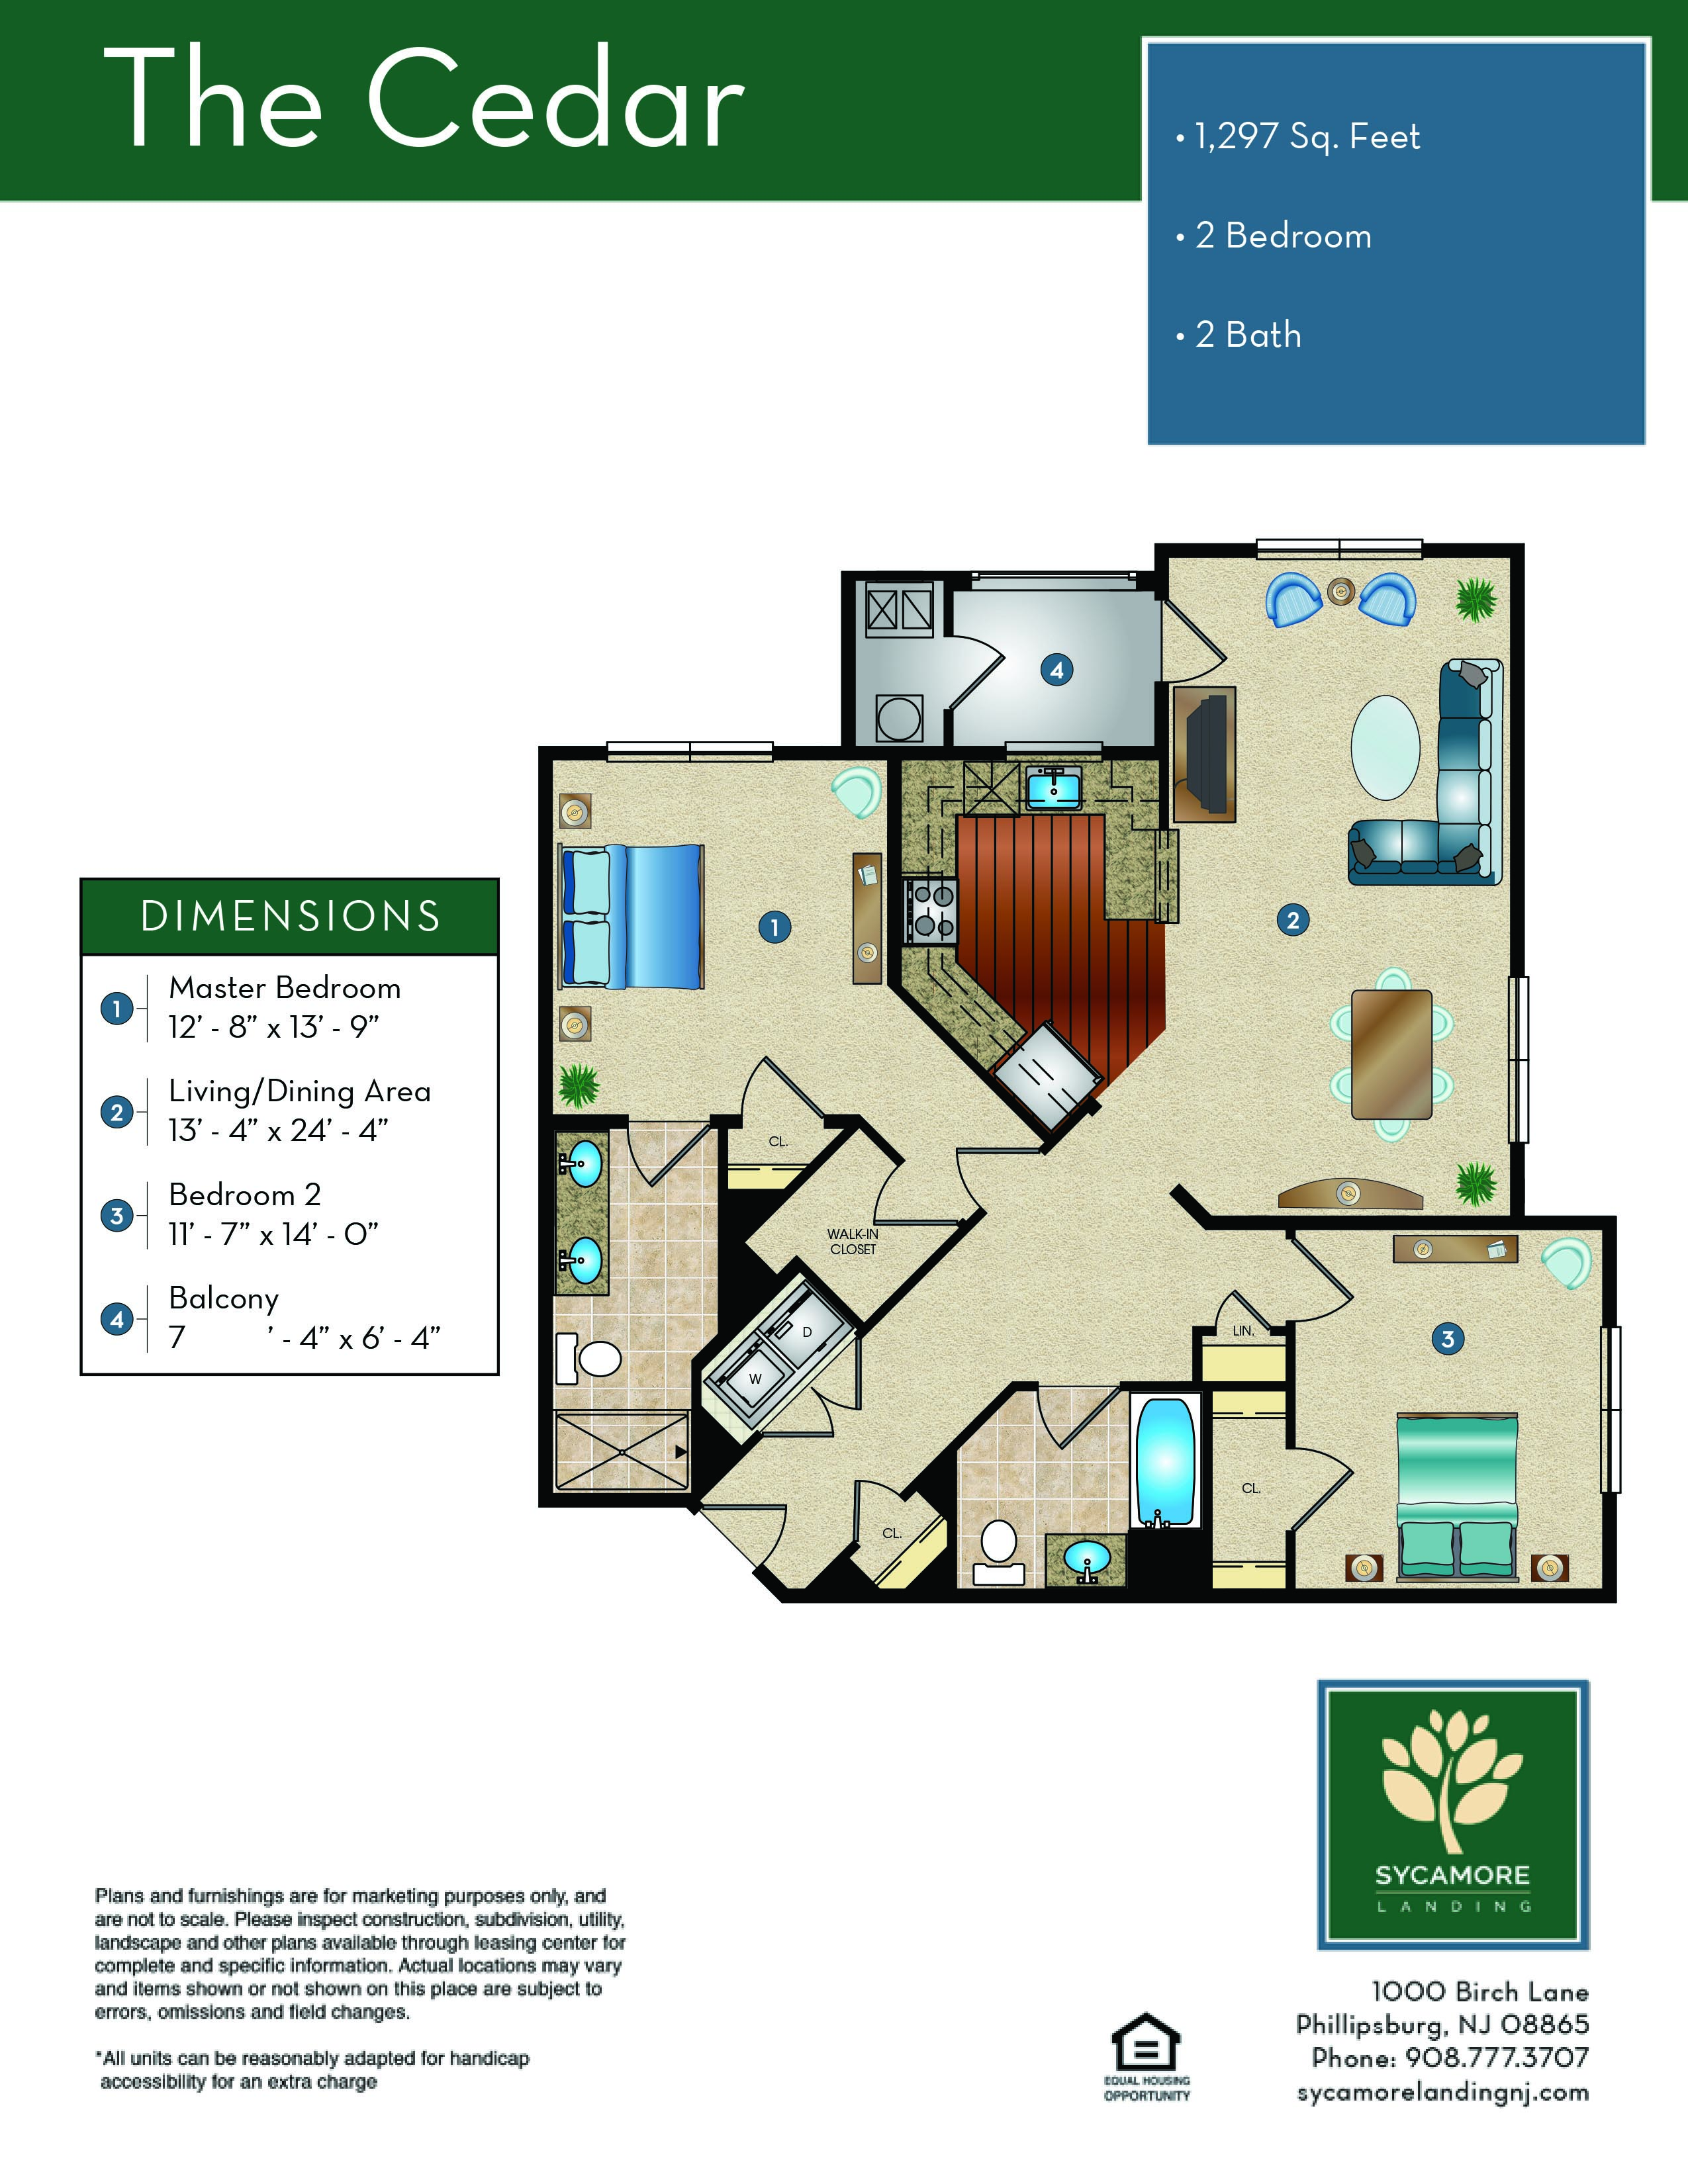 Sycamore Landing Floor Plan - The Cedar